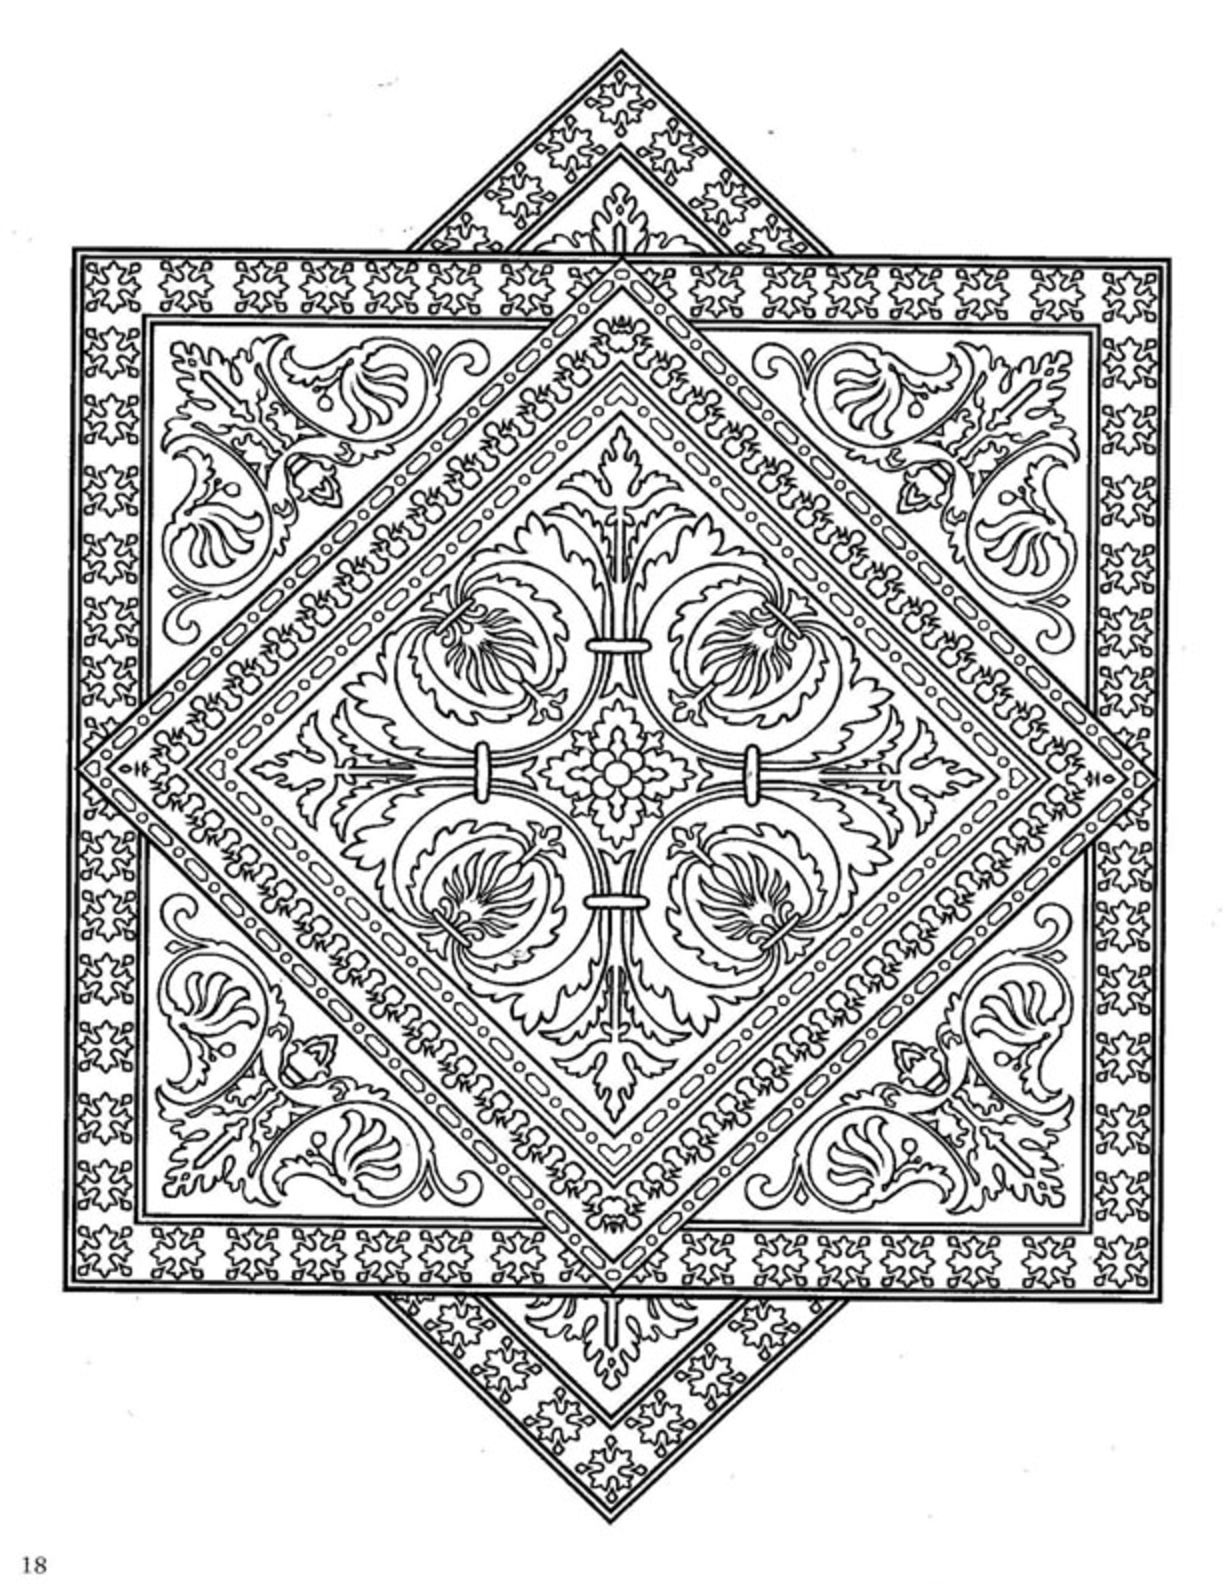 Dover Decorative Tile Coloring Book | Dover Coloring ... - photo#13